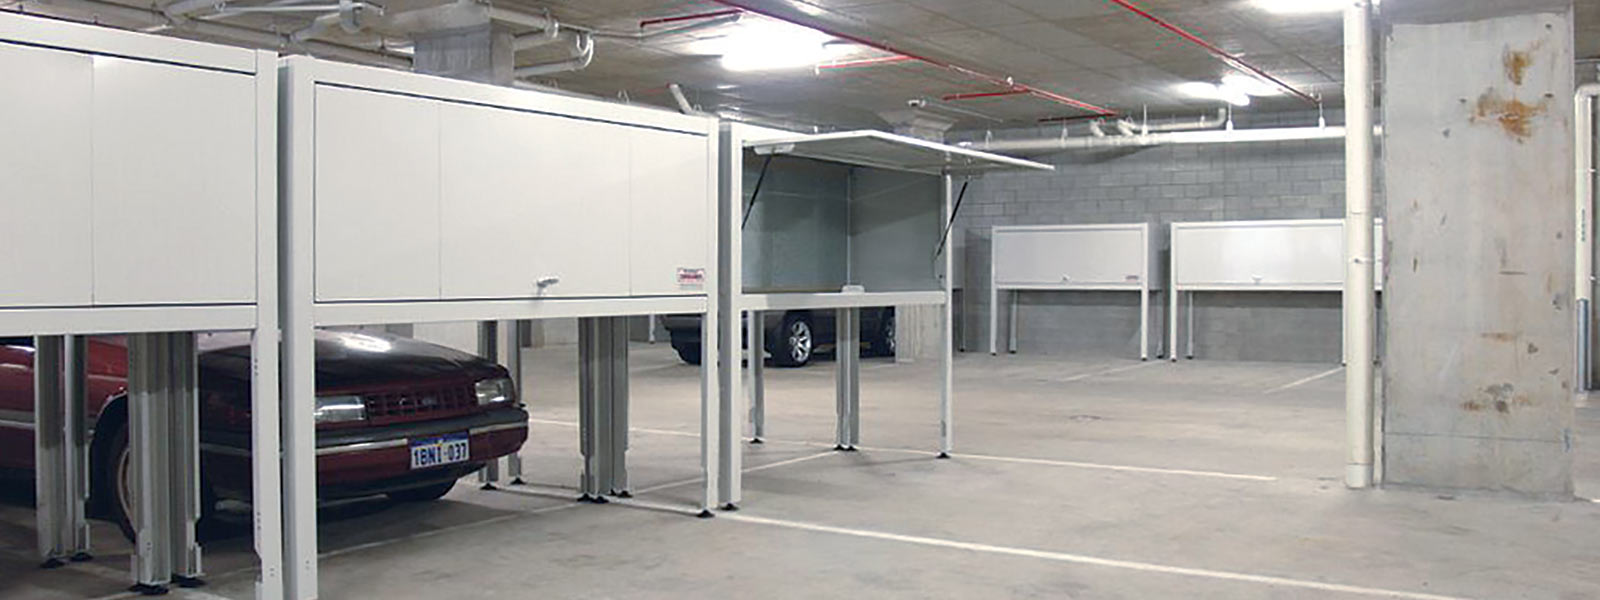 Over bonnet storage unit space commander apartment storage for Apartment garage storage